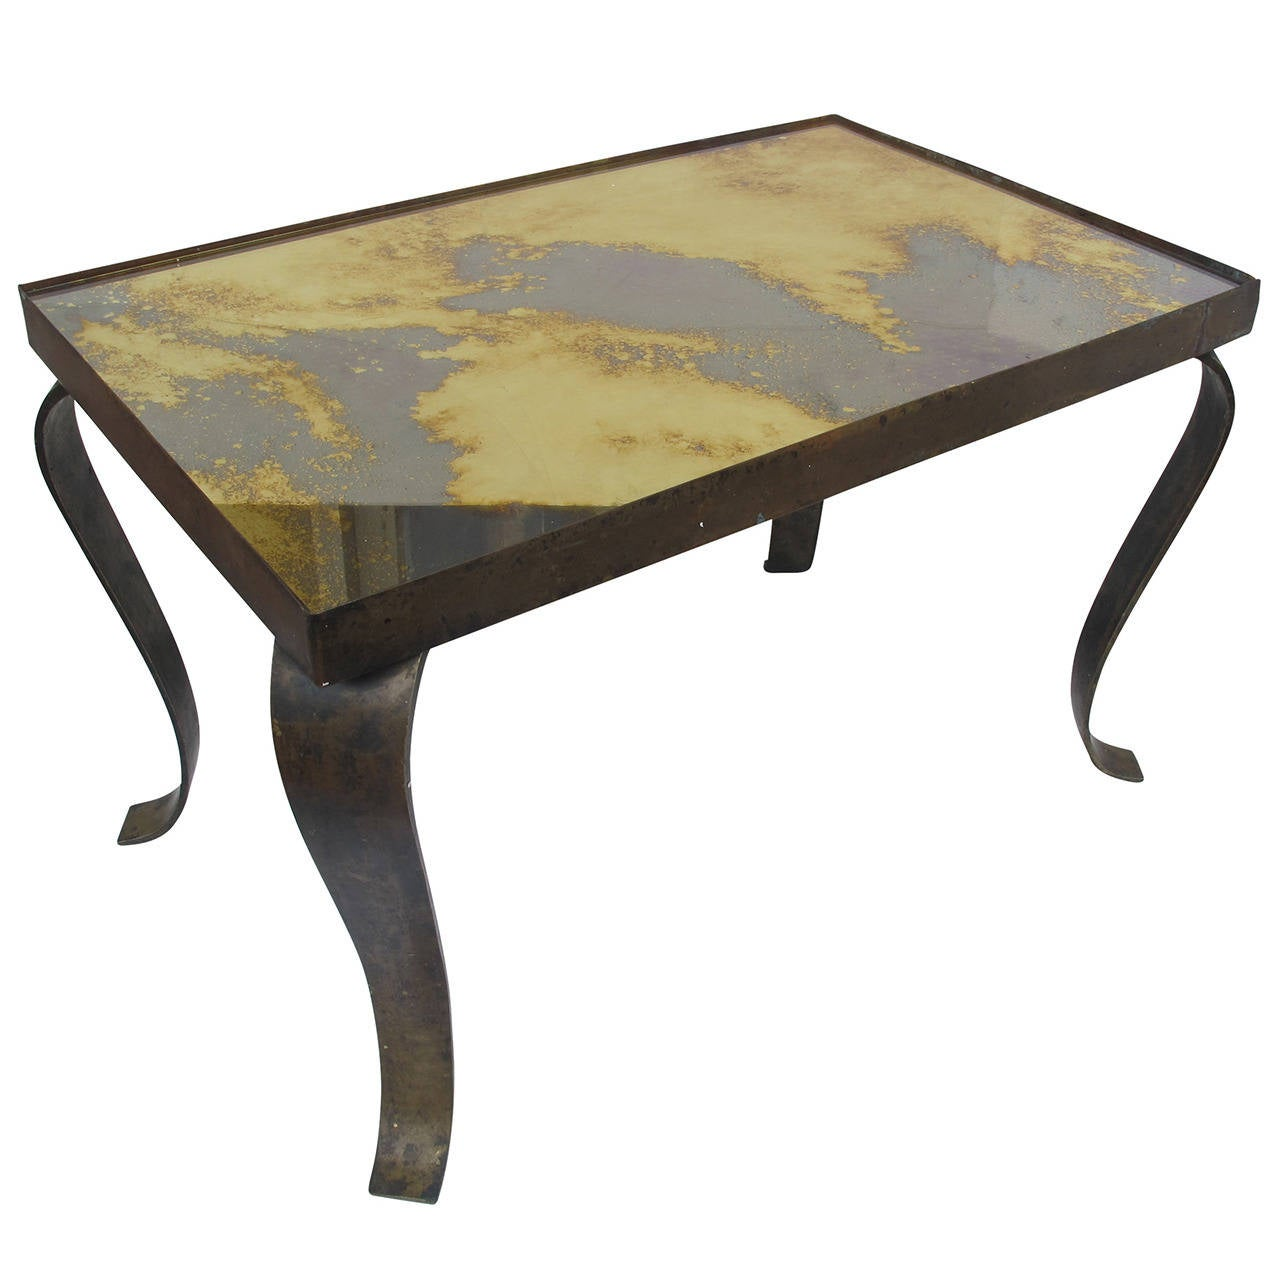 Arturo pani side or coffee table bronze base at 1stdibs for Side table base